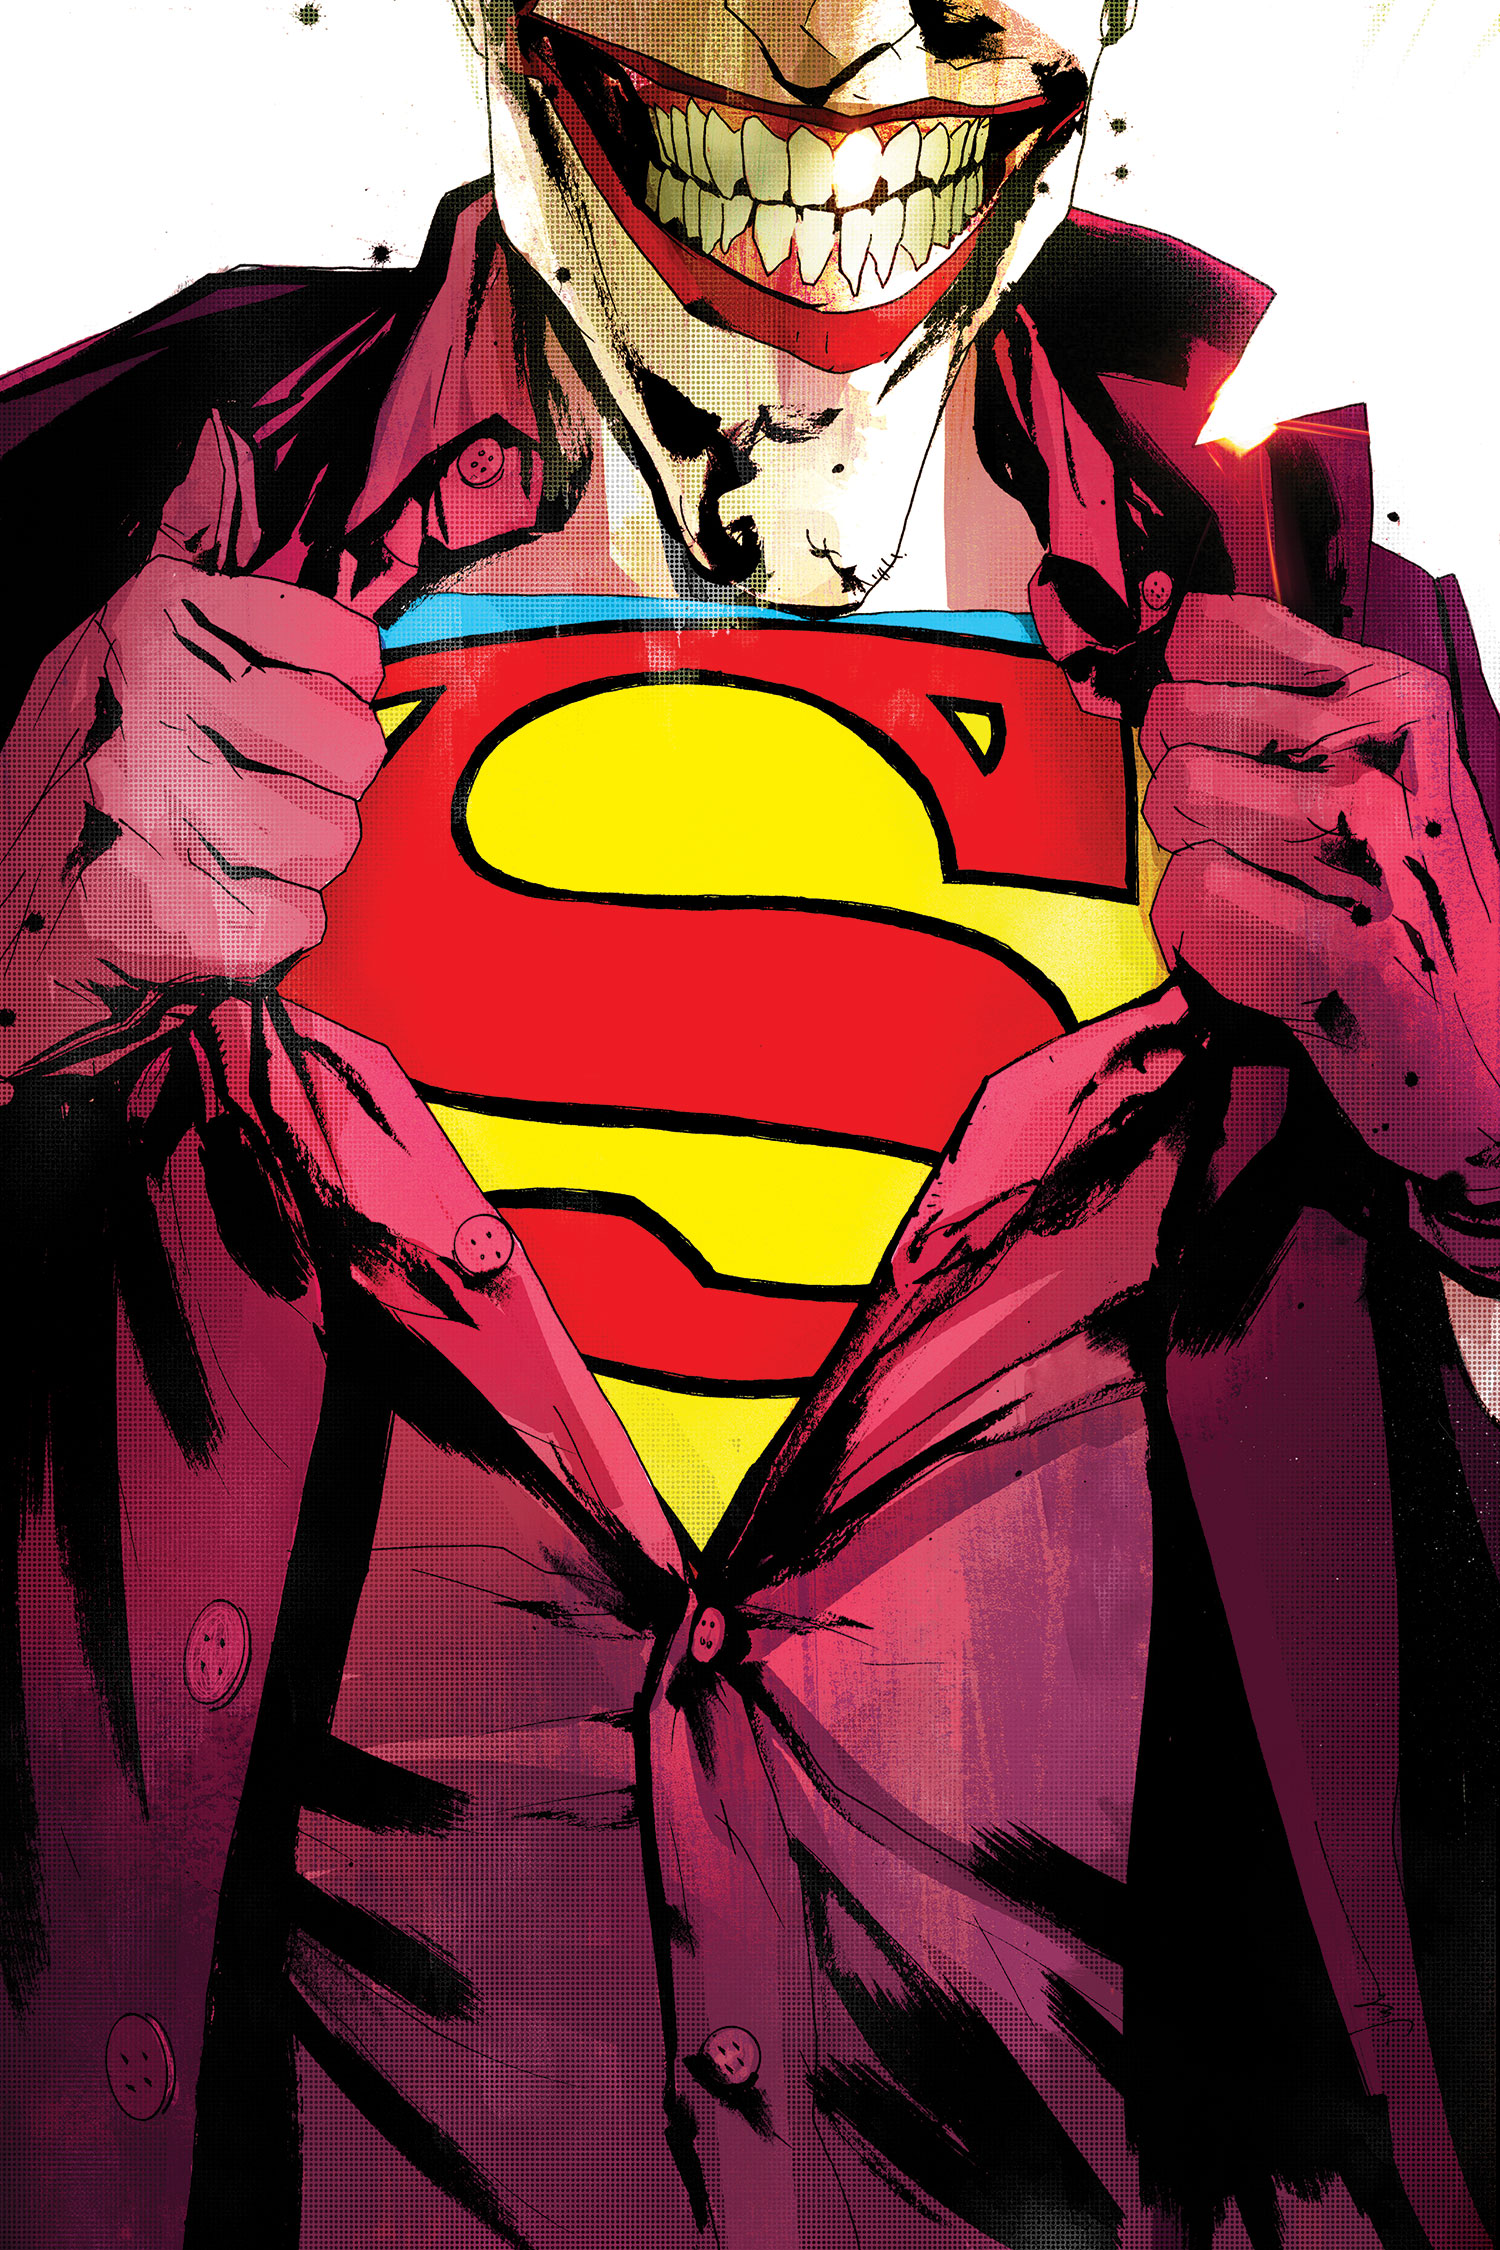 Adventures of Superman Vol 2 14  DC Database  FANDOM powered by